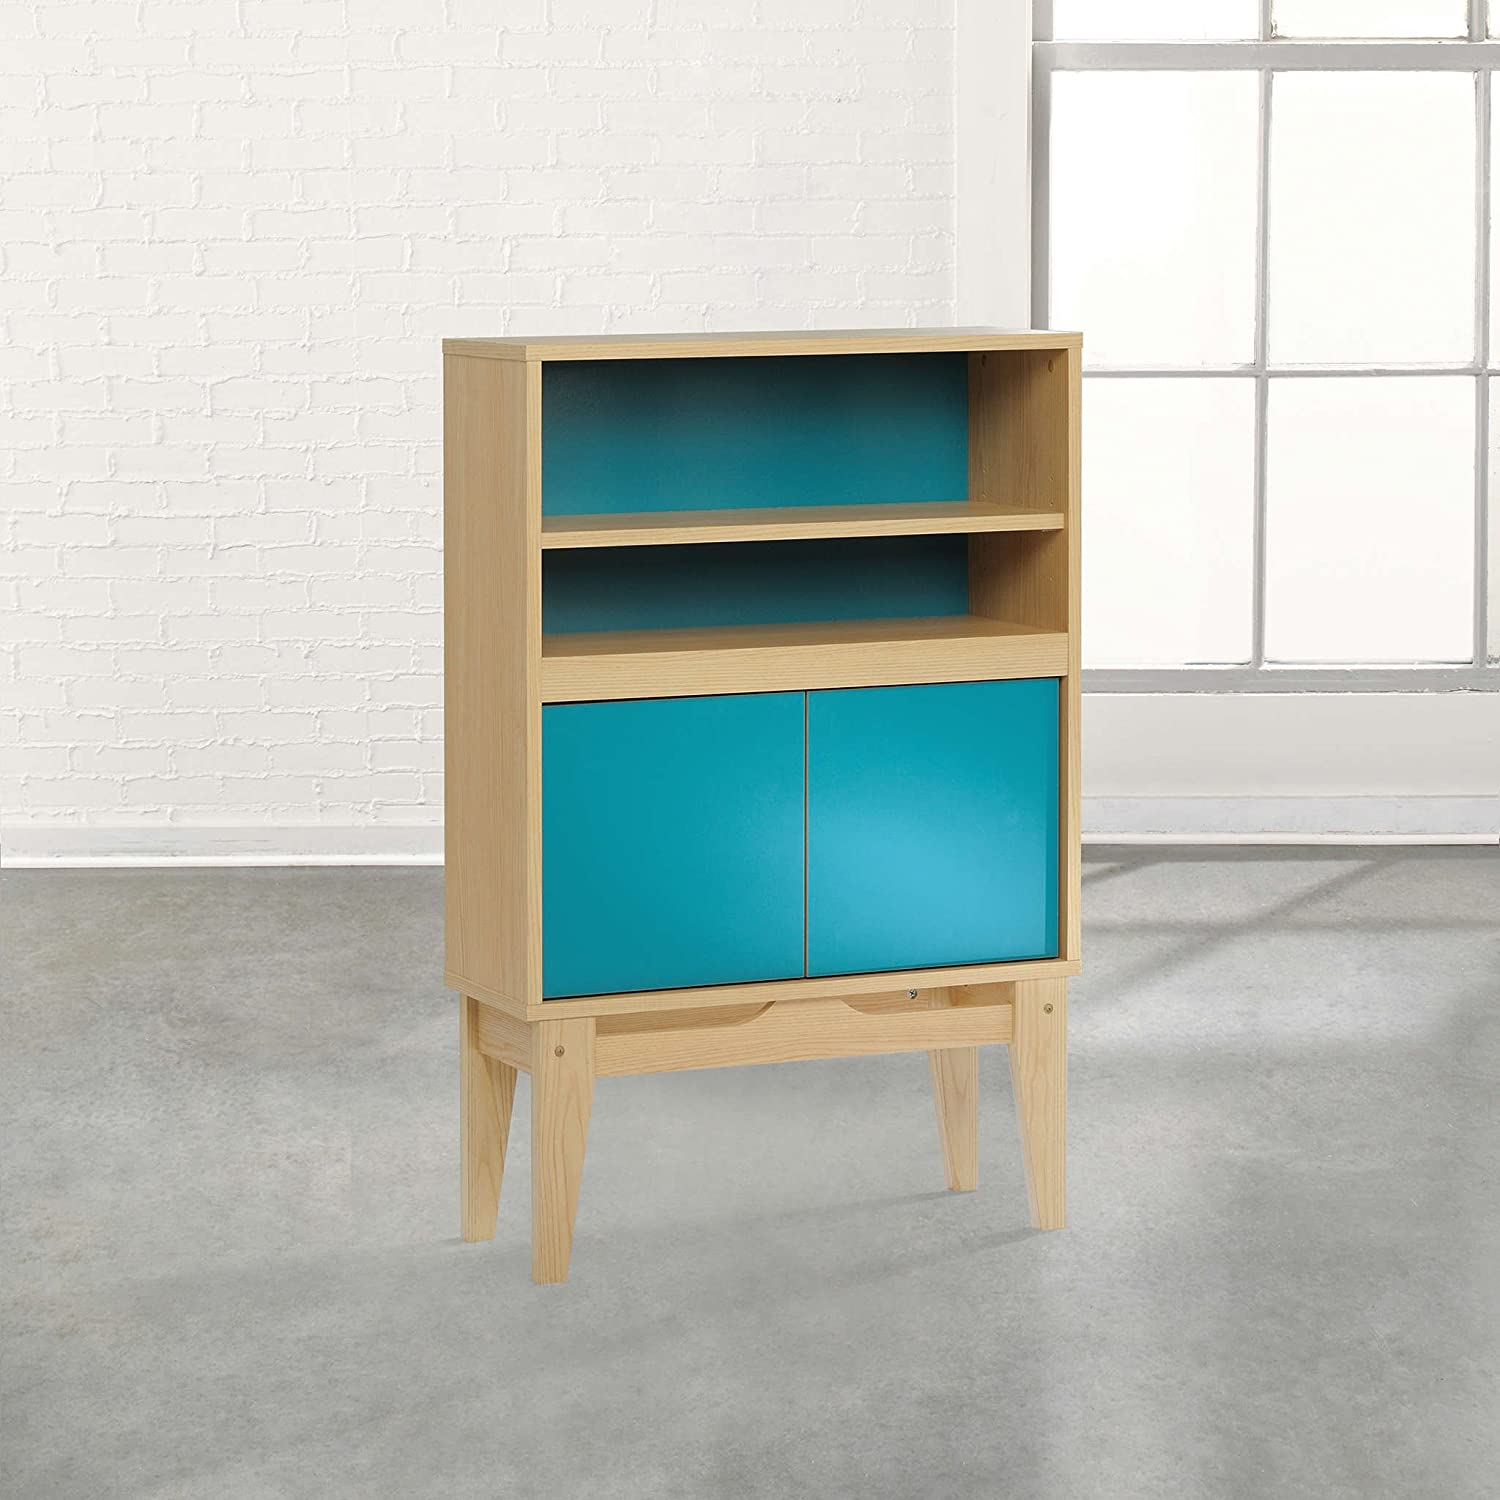 Sauder Soft Modern 2 Shelf Bookcase in Urban Ash 416952